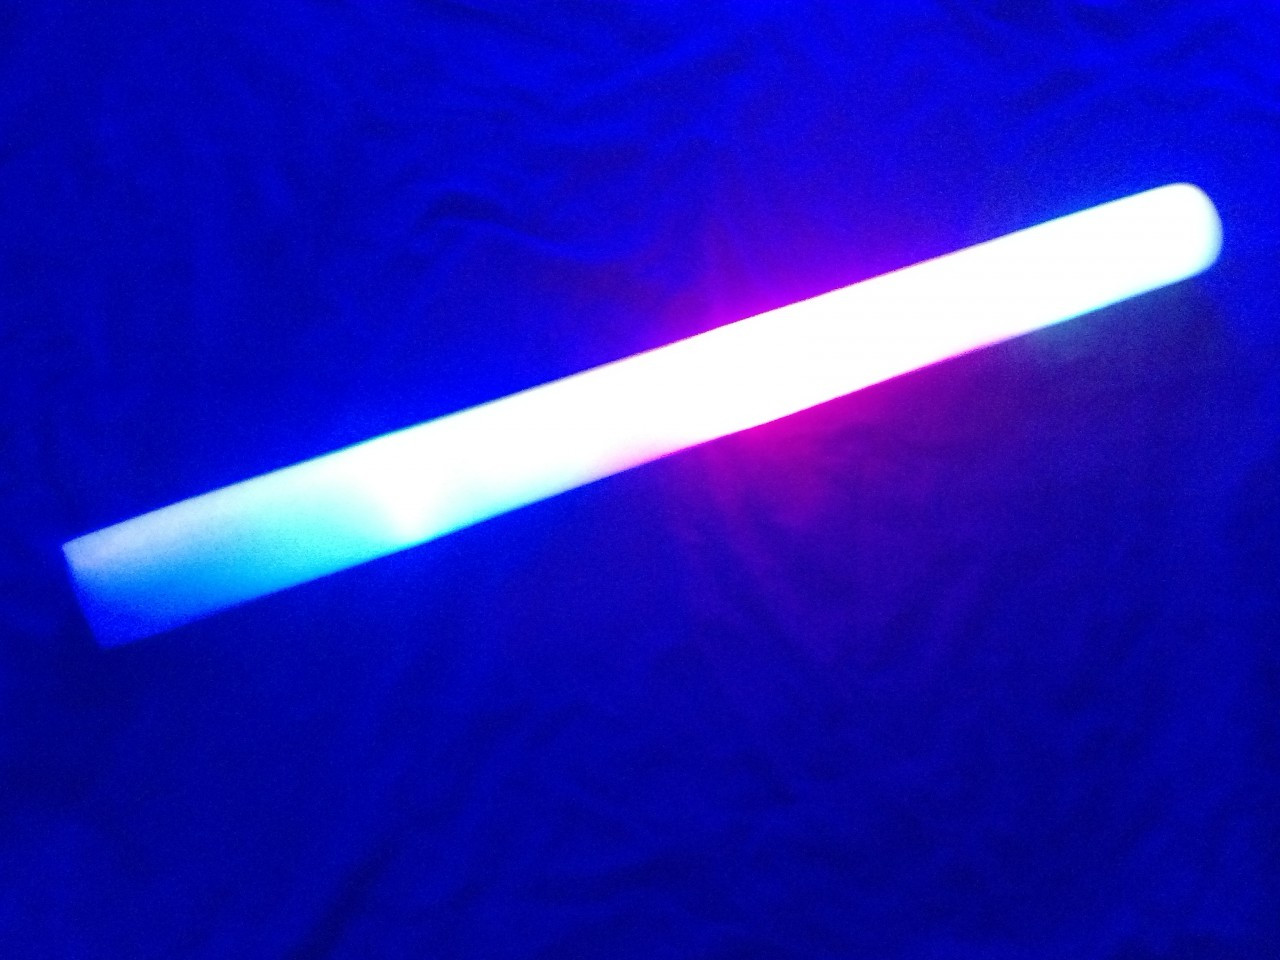 LED , LED BATON, Custom LED Foam Stick, Customized, Personalized, EDM, Electro, House, Promo, Nightclub, Baton, Wand, Stix, Glow, Light up, Lit up, Electronic, Coachella, Grand Central, Foam Sticks, Foam Stix, Glow Sticks, Illuminated, Foam Baton,